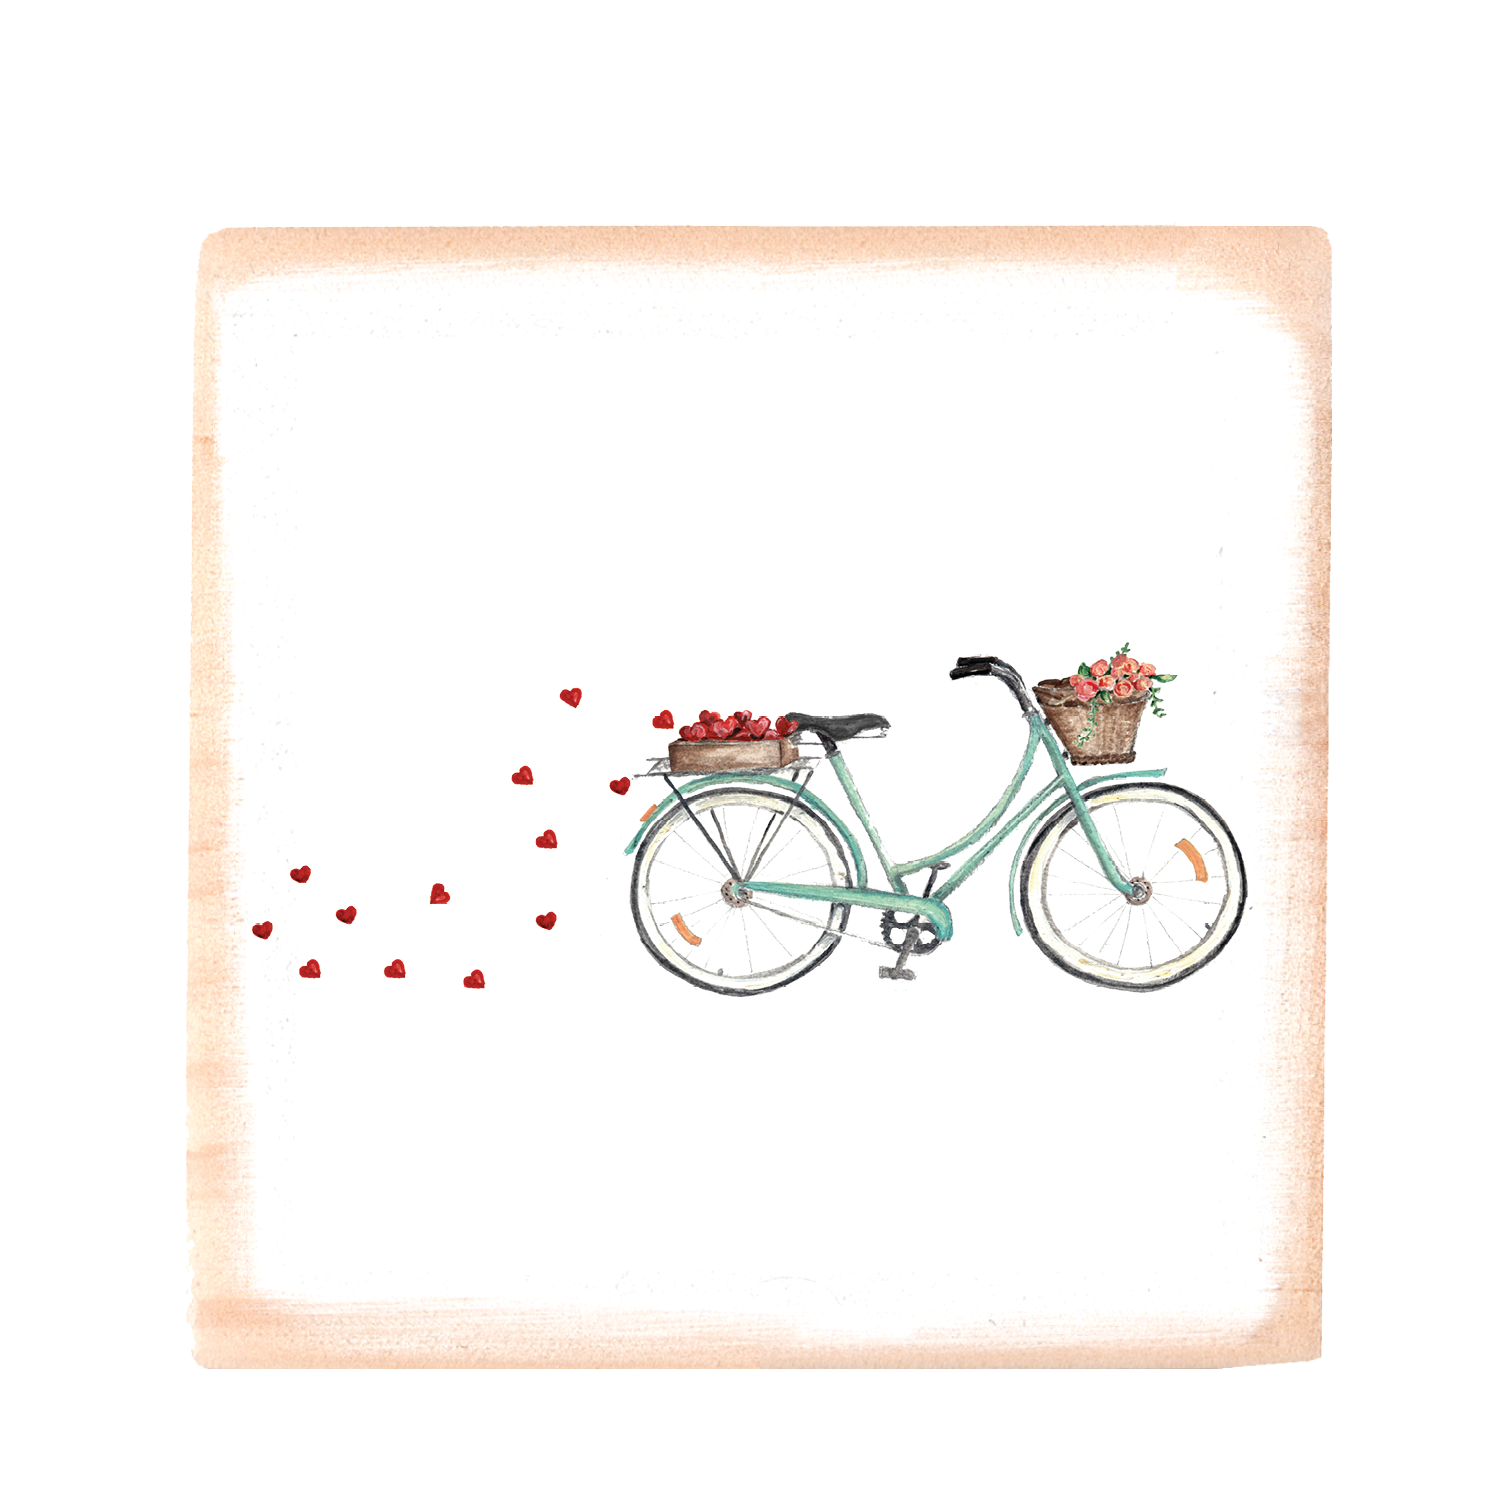 seafoam bike with hearts + roses